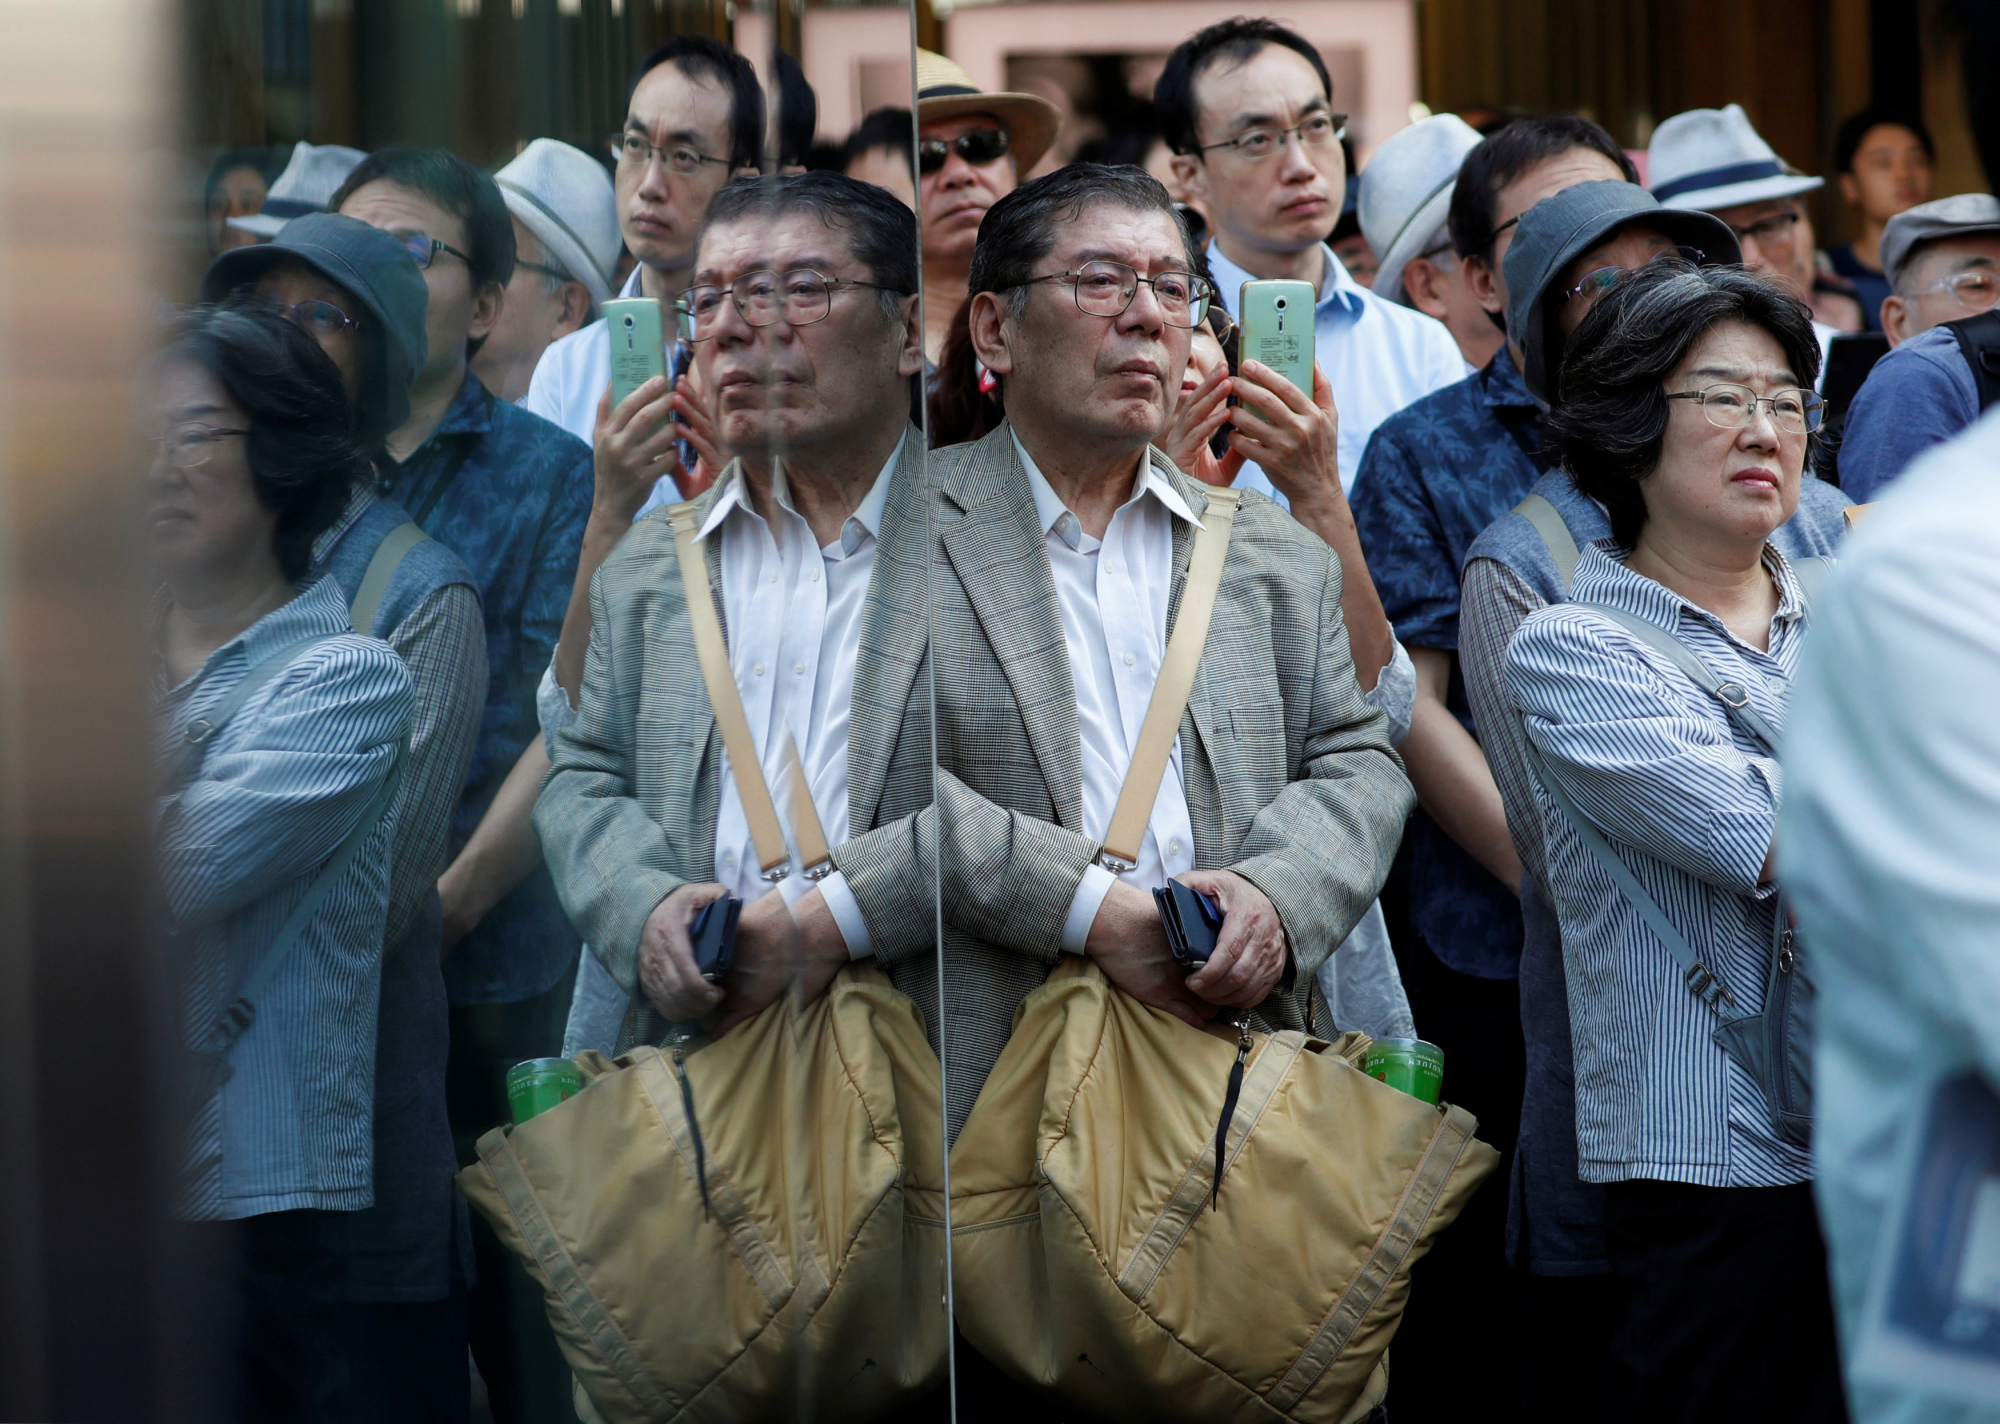 Voters listen to a politician speak in Tokyo on Tuesday, the first day of official campaigning for the Oct. 22 election.   REUTERS